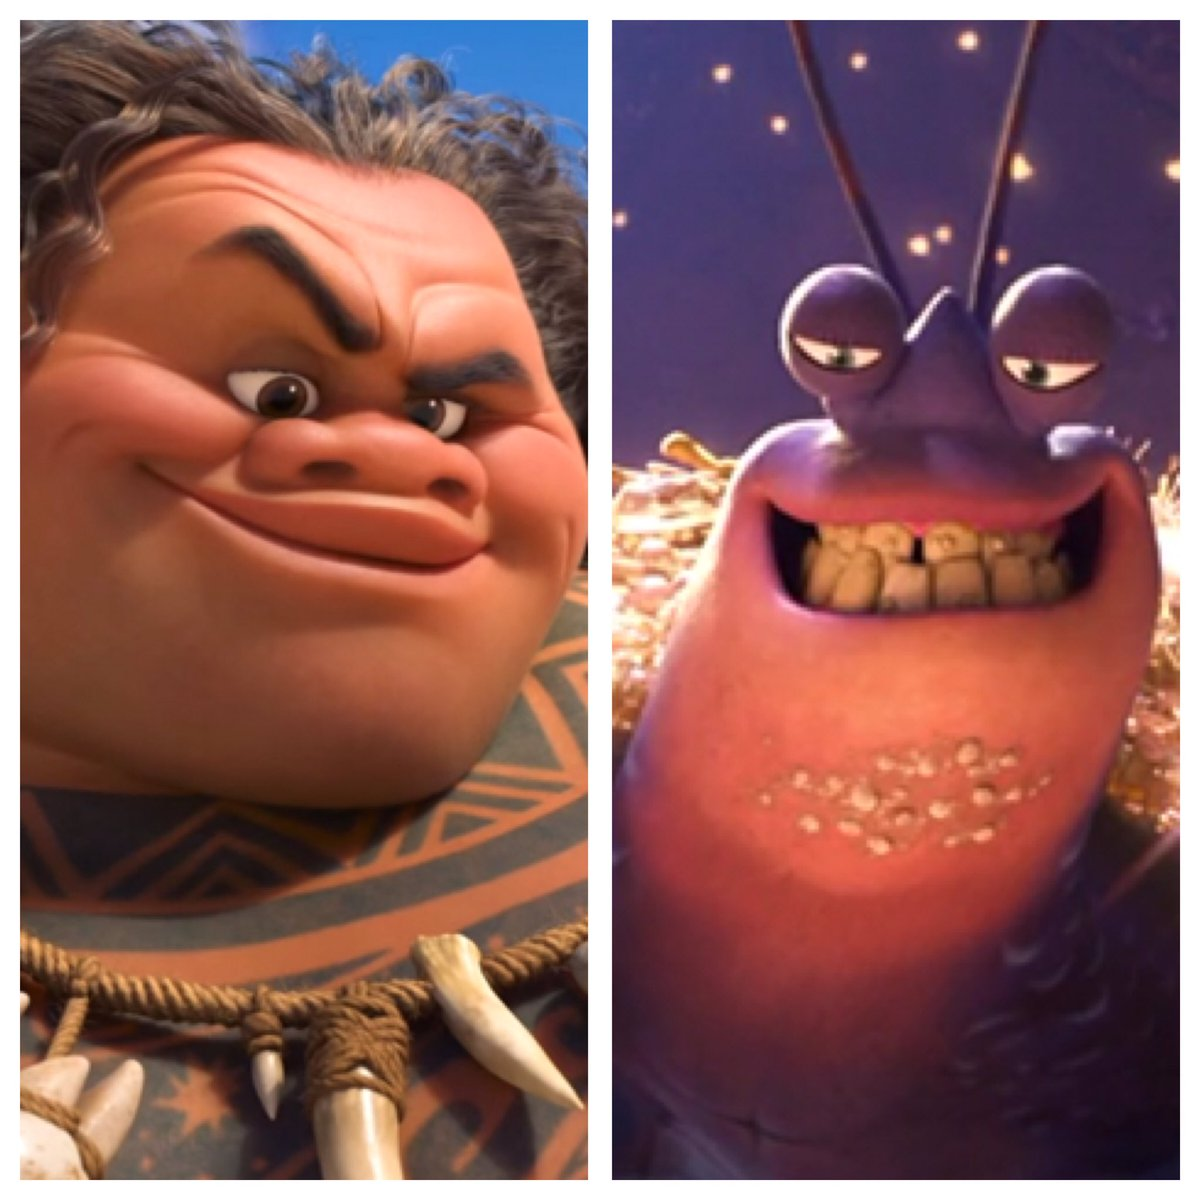 Maui/Tamatoa: Demi-God training bros till Tamatoa lost a battle, got stuck as a crab, and lost access to the fish hook. #InstantFanTheory <br>http://pic.twitter.com/194twiwDDe